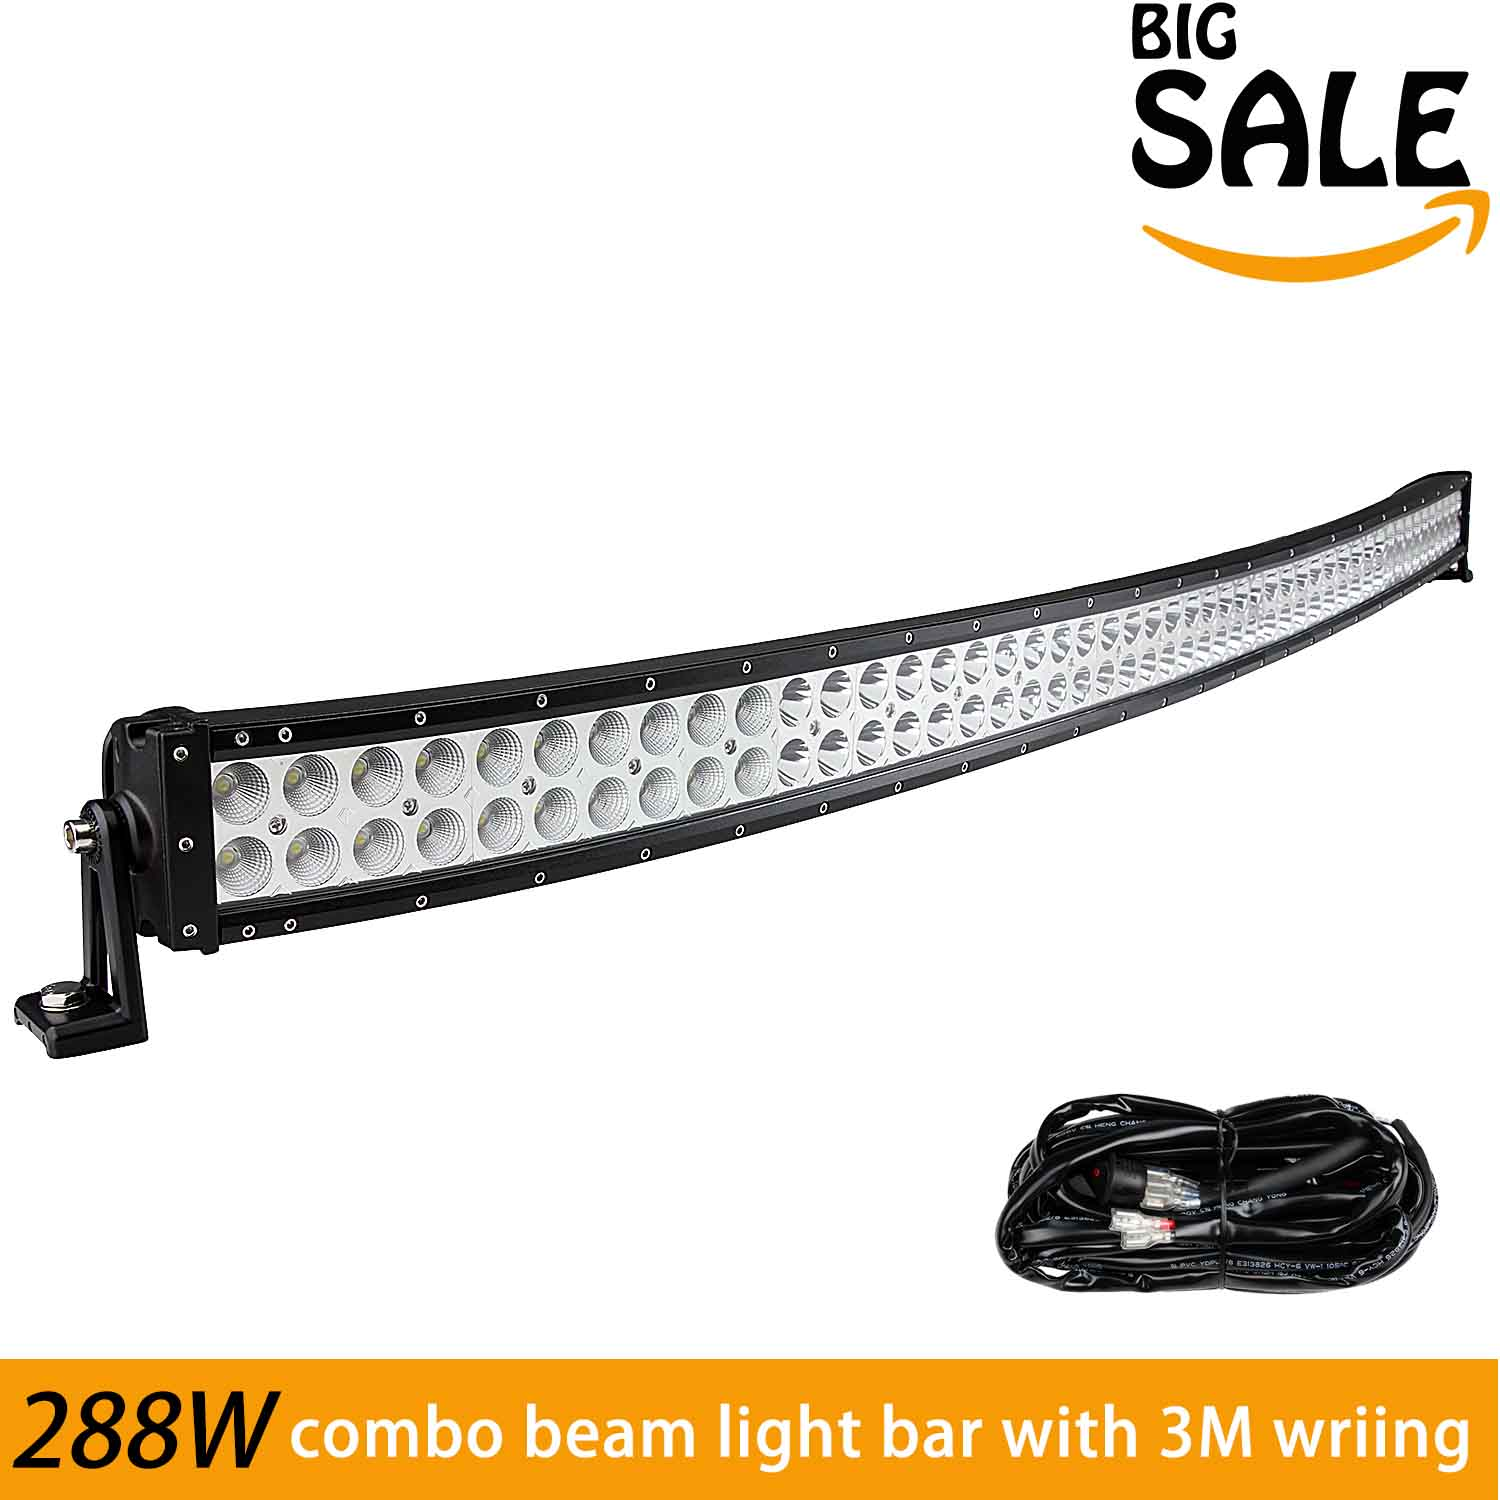 "Phenas Curved 50"" Inch Led Light Bar 288W 17280LM Combo Beam + 3 LEAD Remote Control Wiring Harness Kit Fit... by Phenas"